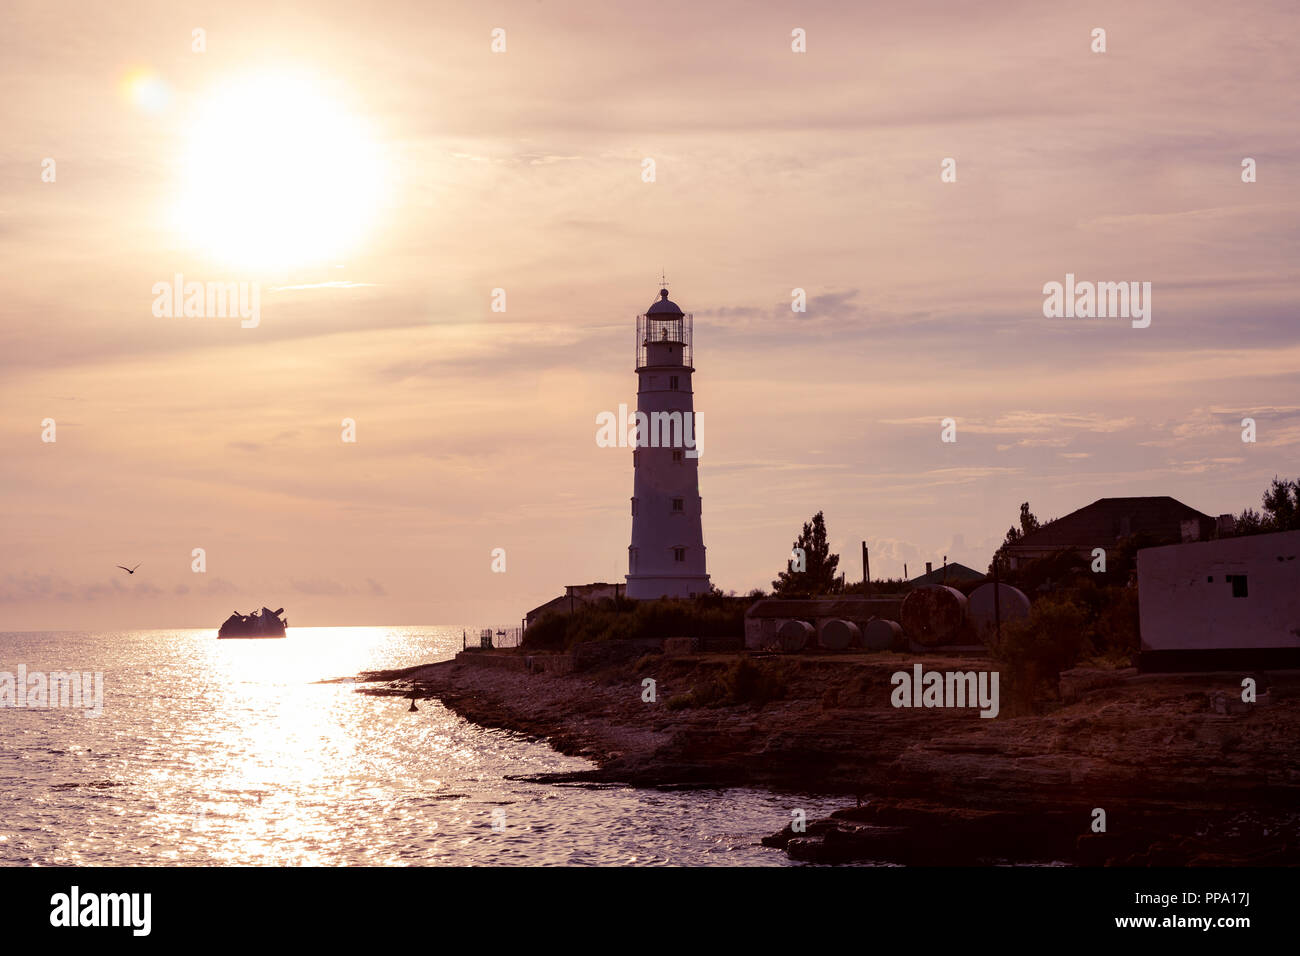 Lighthouse searchlight beam near ocean at sunset. Lighthouse at sunset in the twilight in clear weather - Stock Image